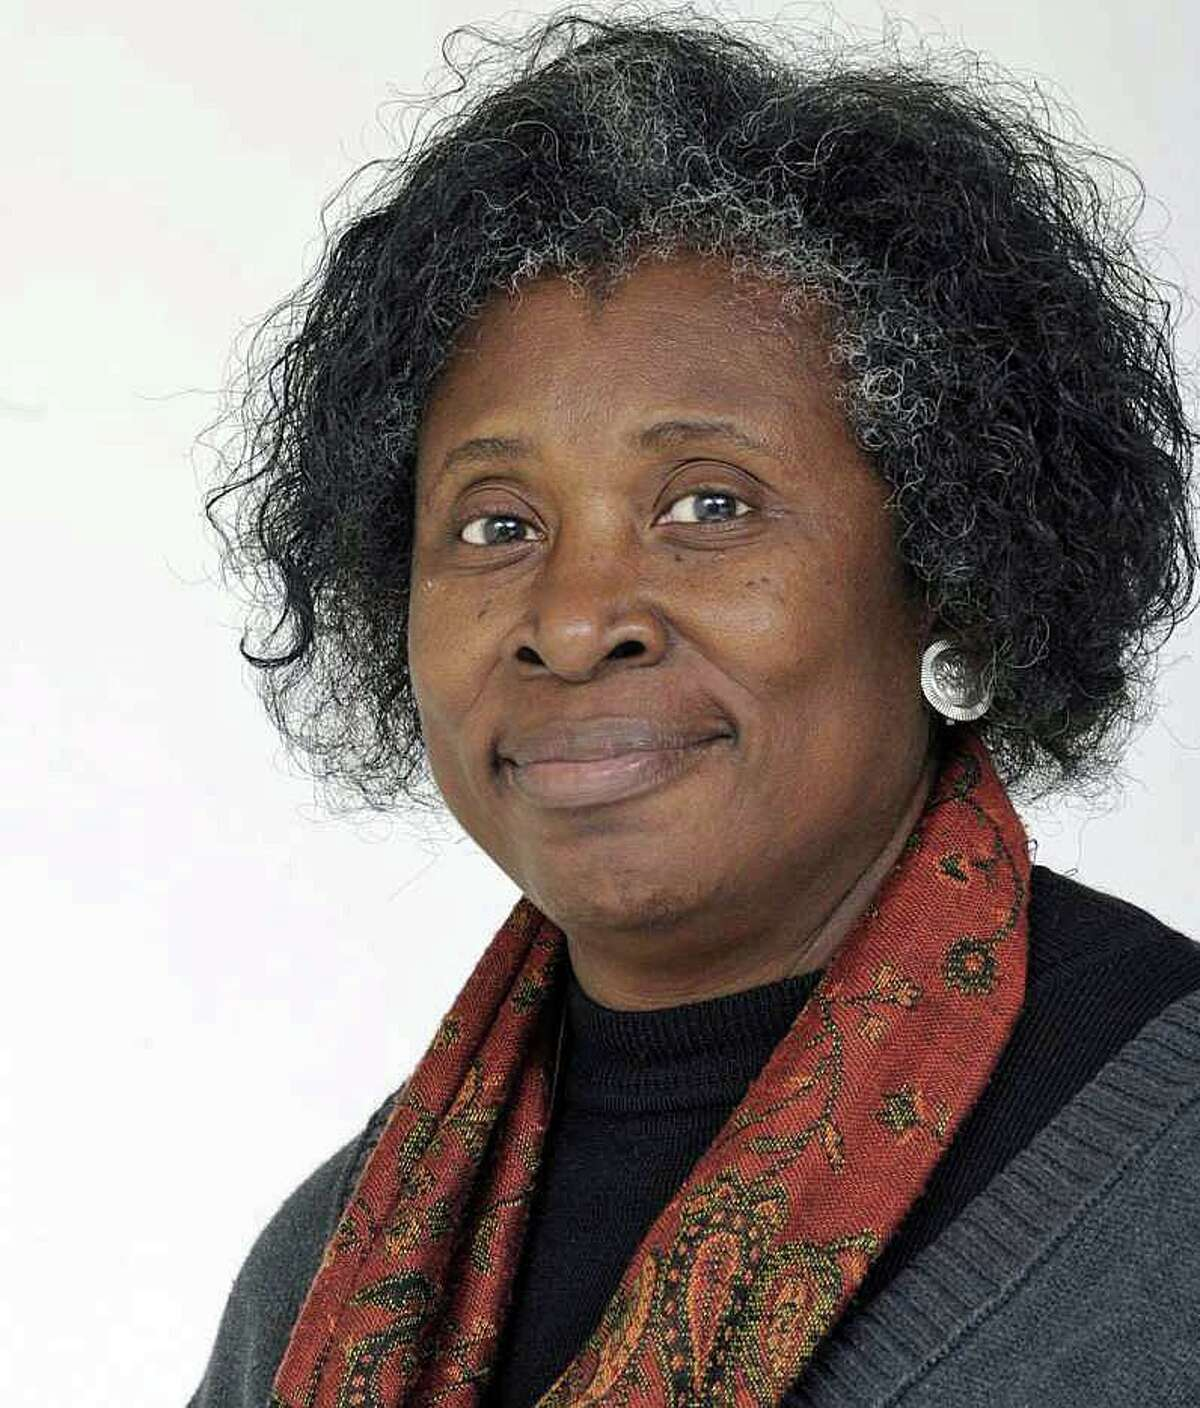 Glenda Armstrong, the president of the Danbury chapter of the NAACP.